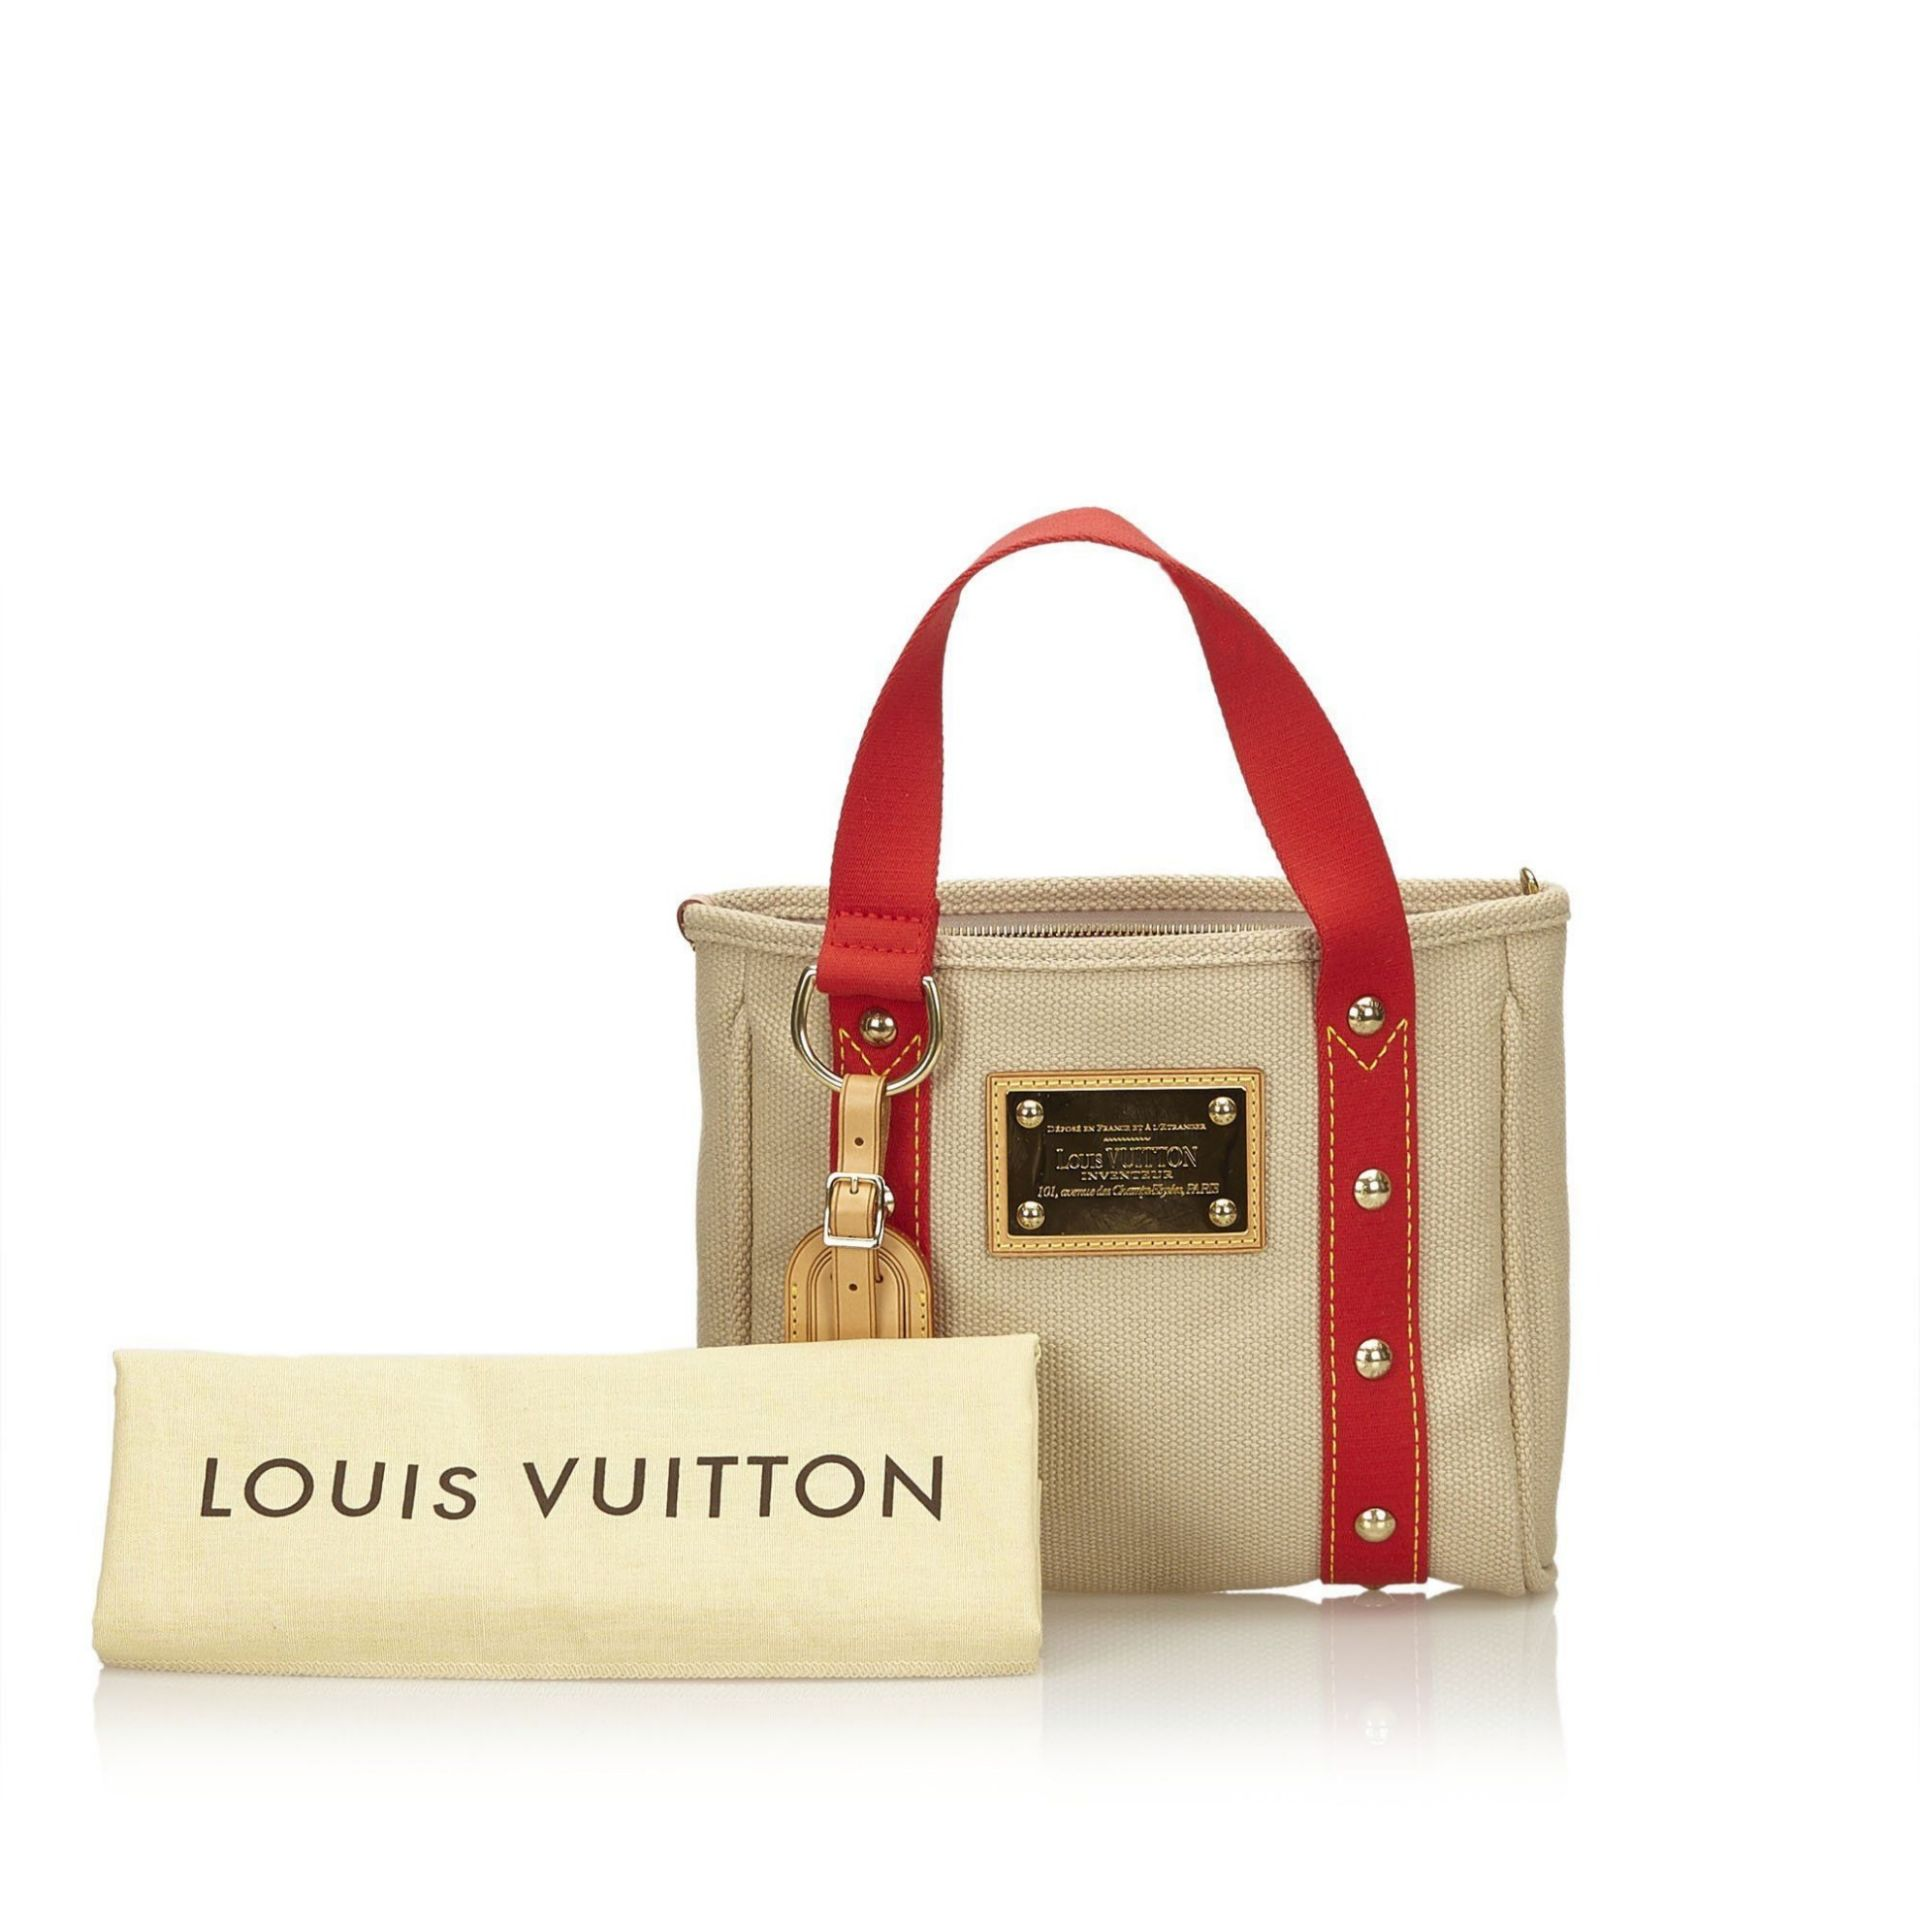 Tan Louis Vuitton Antigua Cabas PM Tote Bag